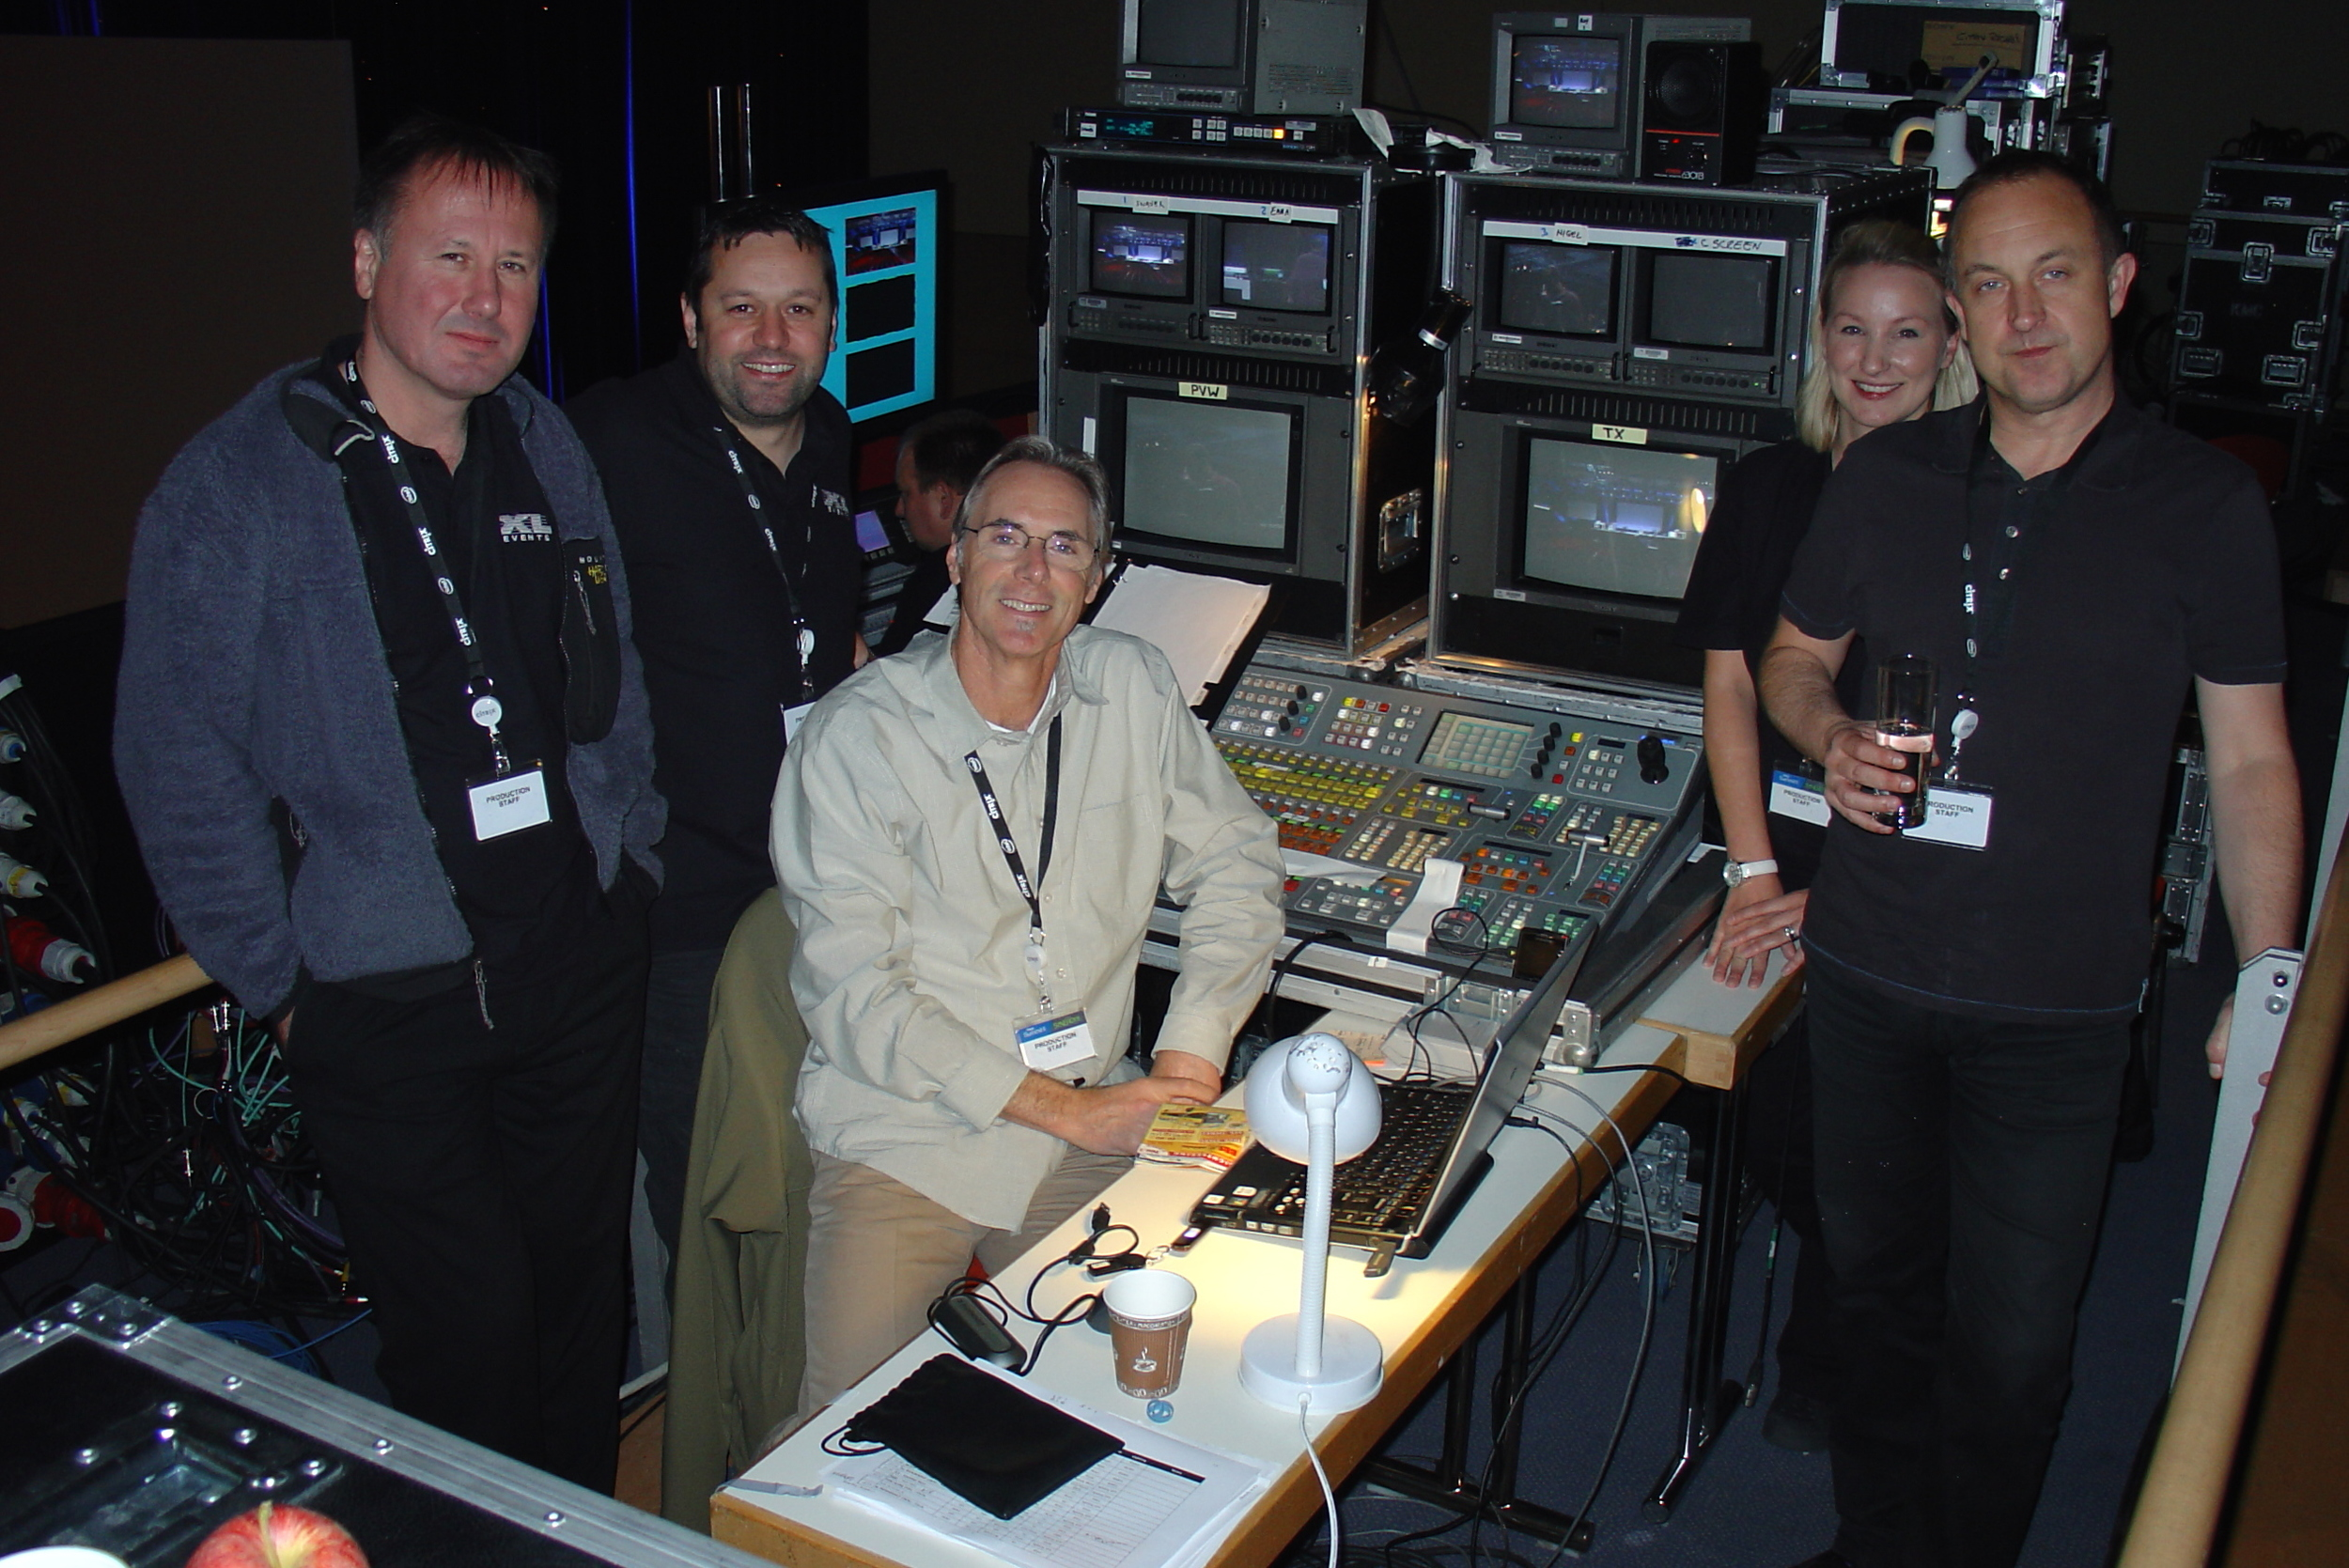 Jim & Video Crew, Berlin